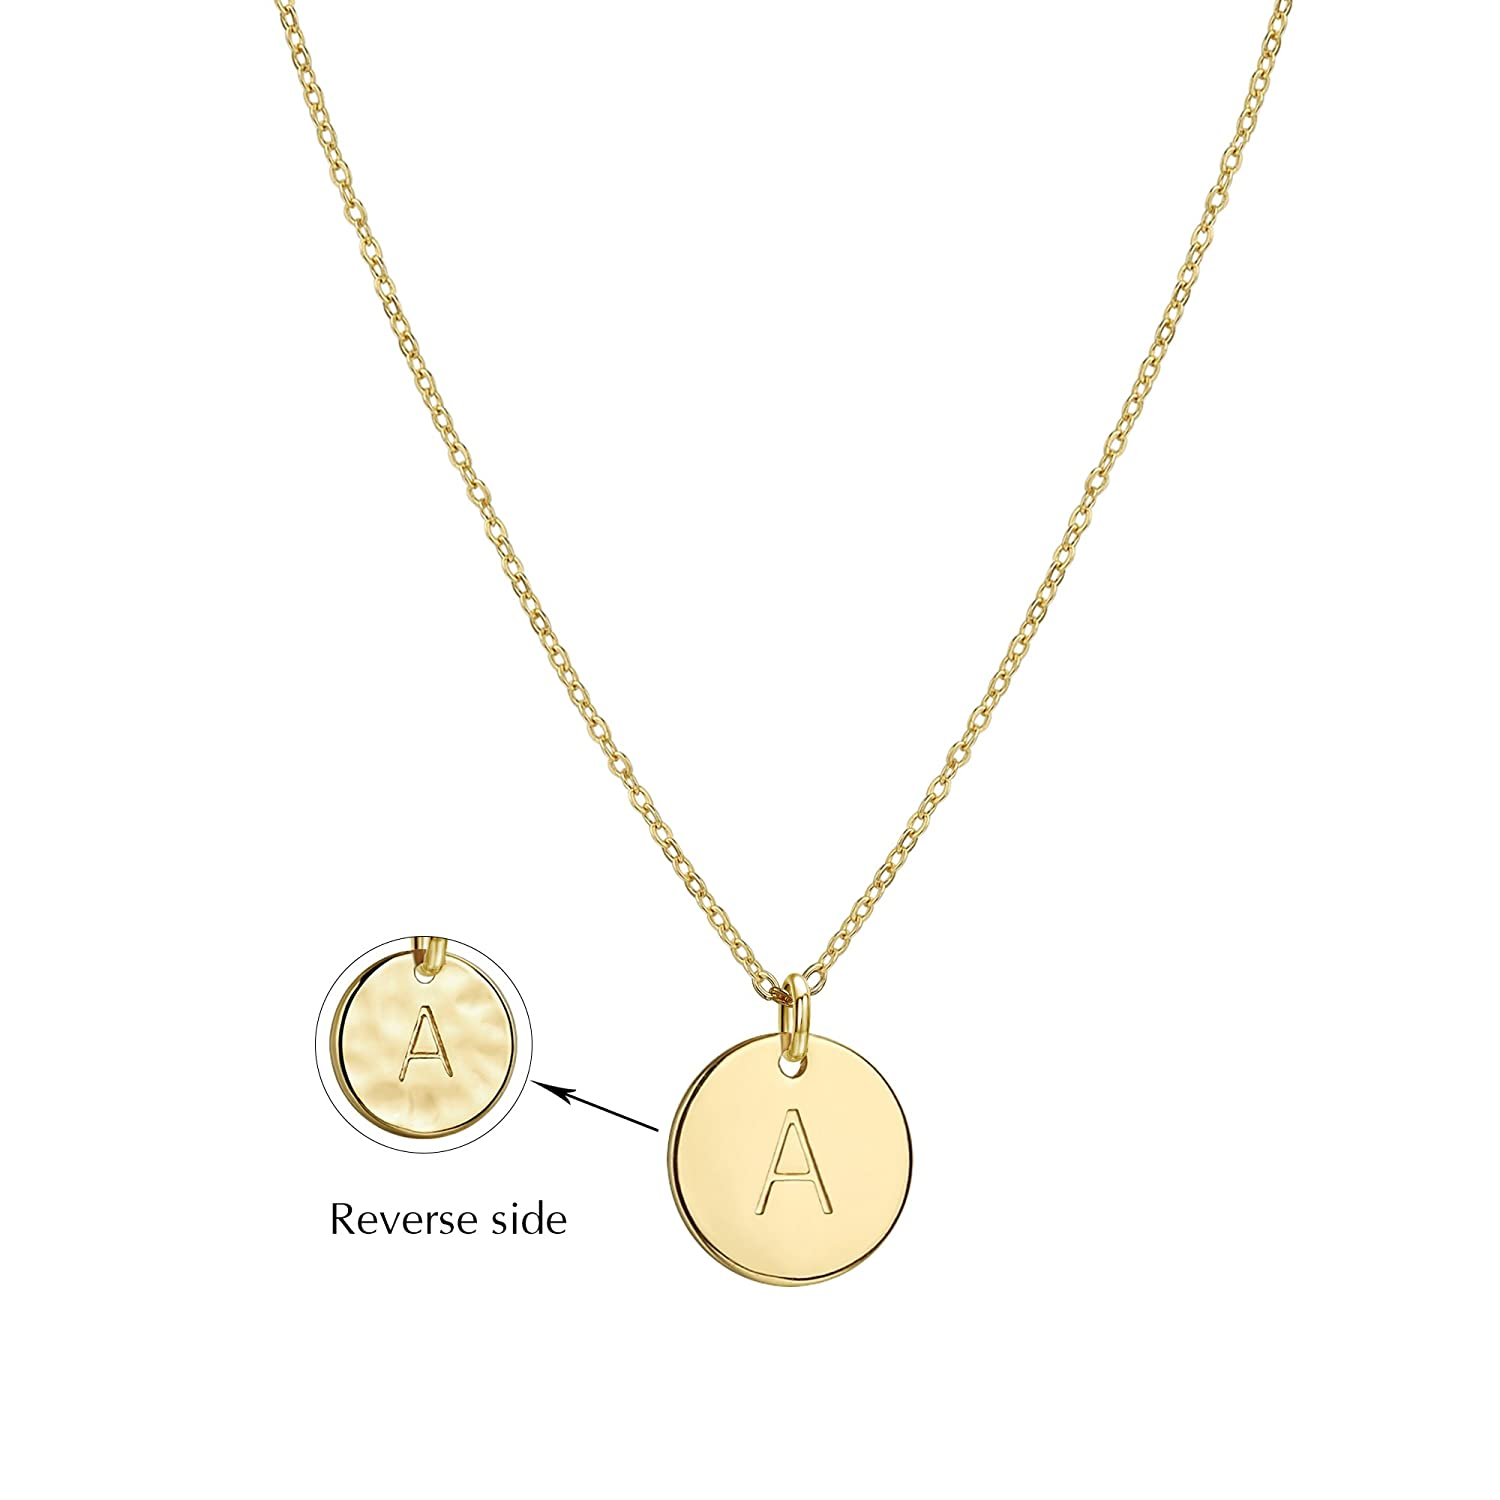 Befettly Hammered Necklace Pendant 14 K Gold Plated Round Disc Double Side Engraved Initial Pendant 17.5'' Adjustable Necklace With Personalized Alphabet Letter by Befettly